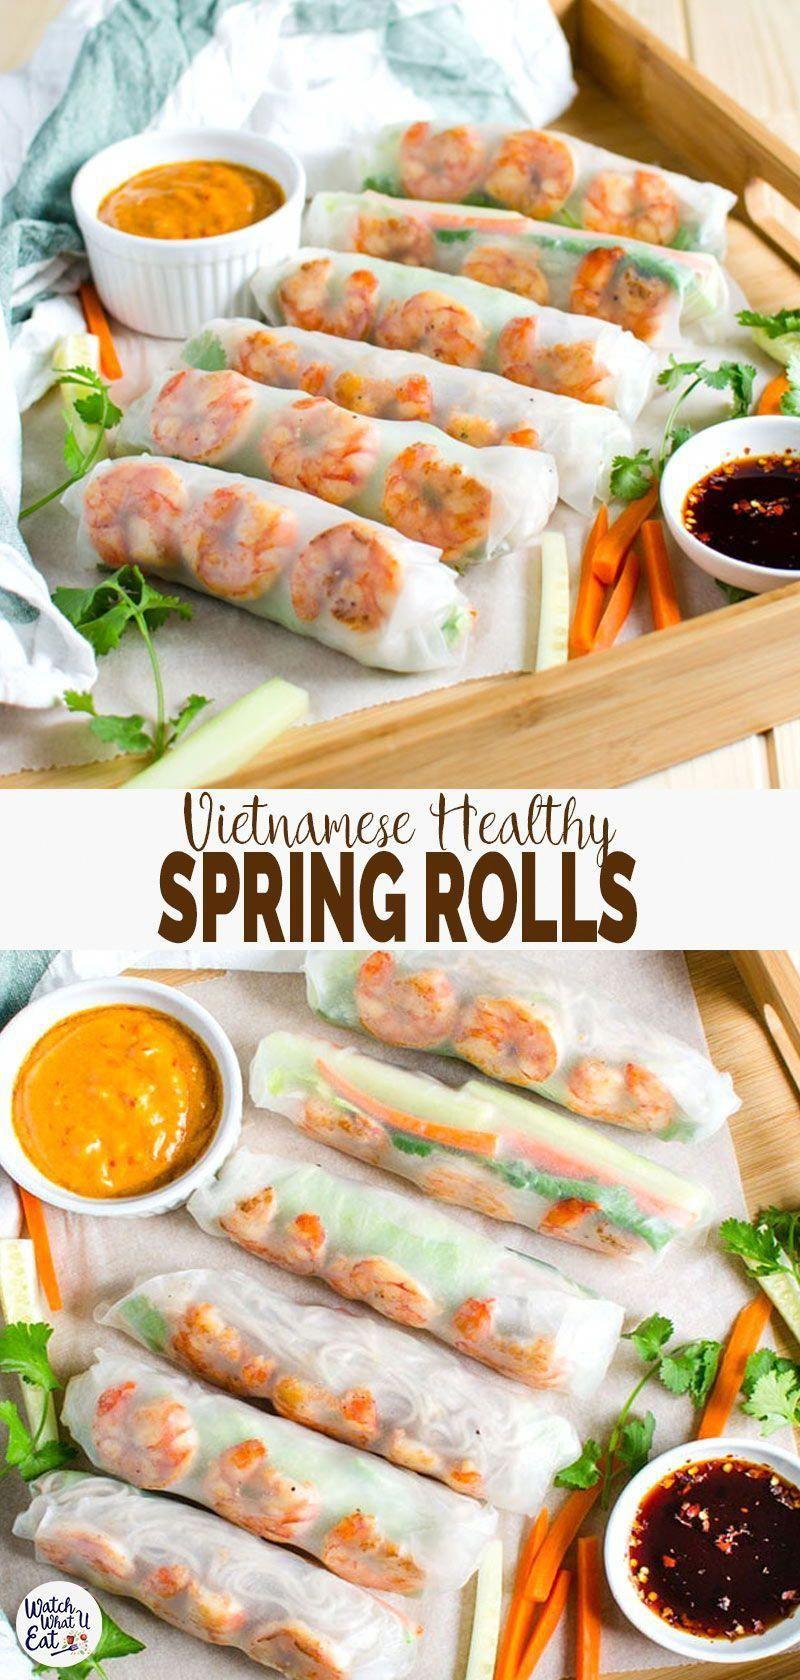 Vietnamese healthy spring rolls with creamy peanut butter sauce are a perfect treat to yourself at home. 30 min flavorful, healthy rolls for lunch or dinner.| #watchwhatueat #Vietnamese #springrolls #healthyrecipes Dinner Recipes #HealthyLivingFood